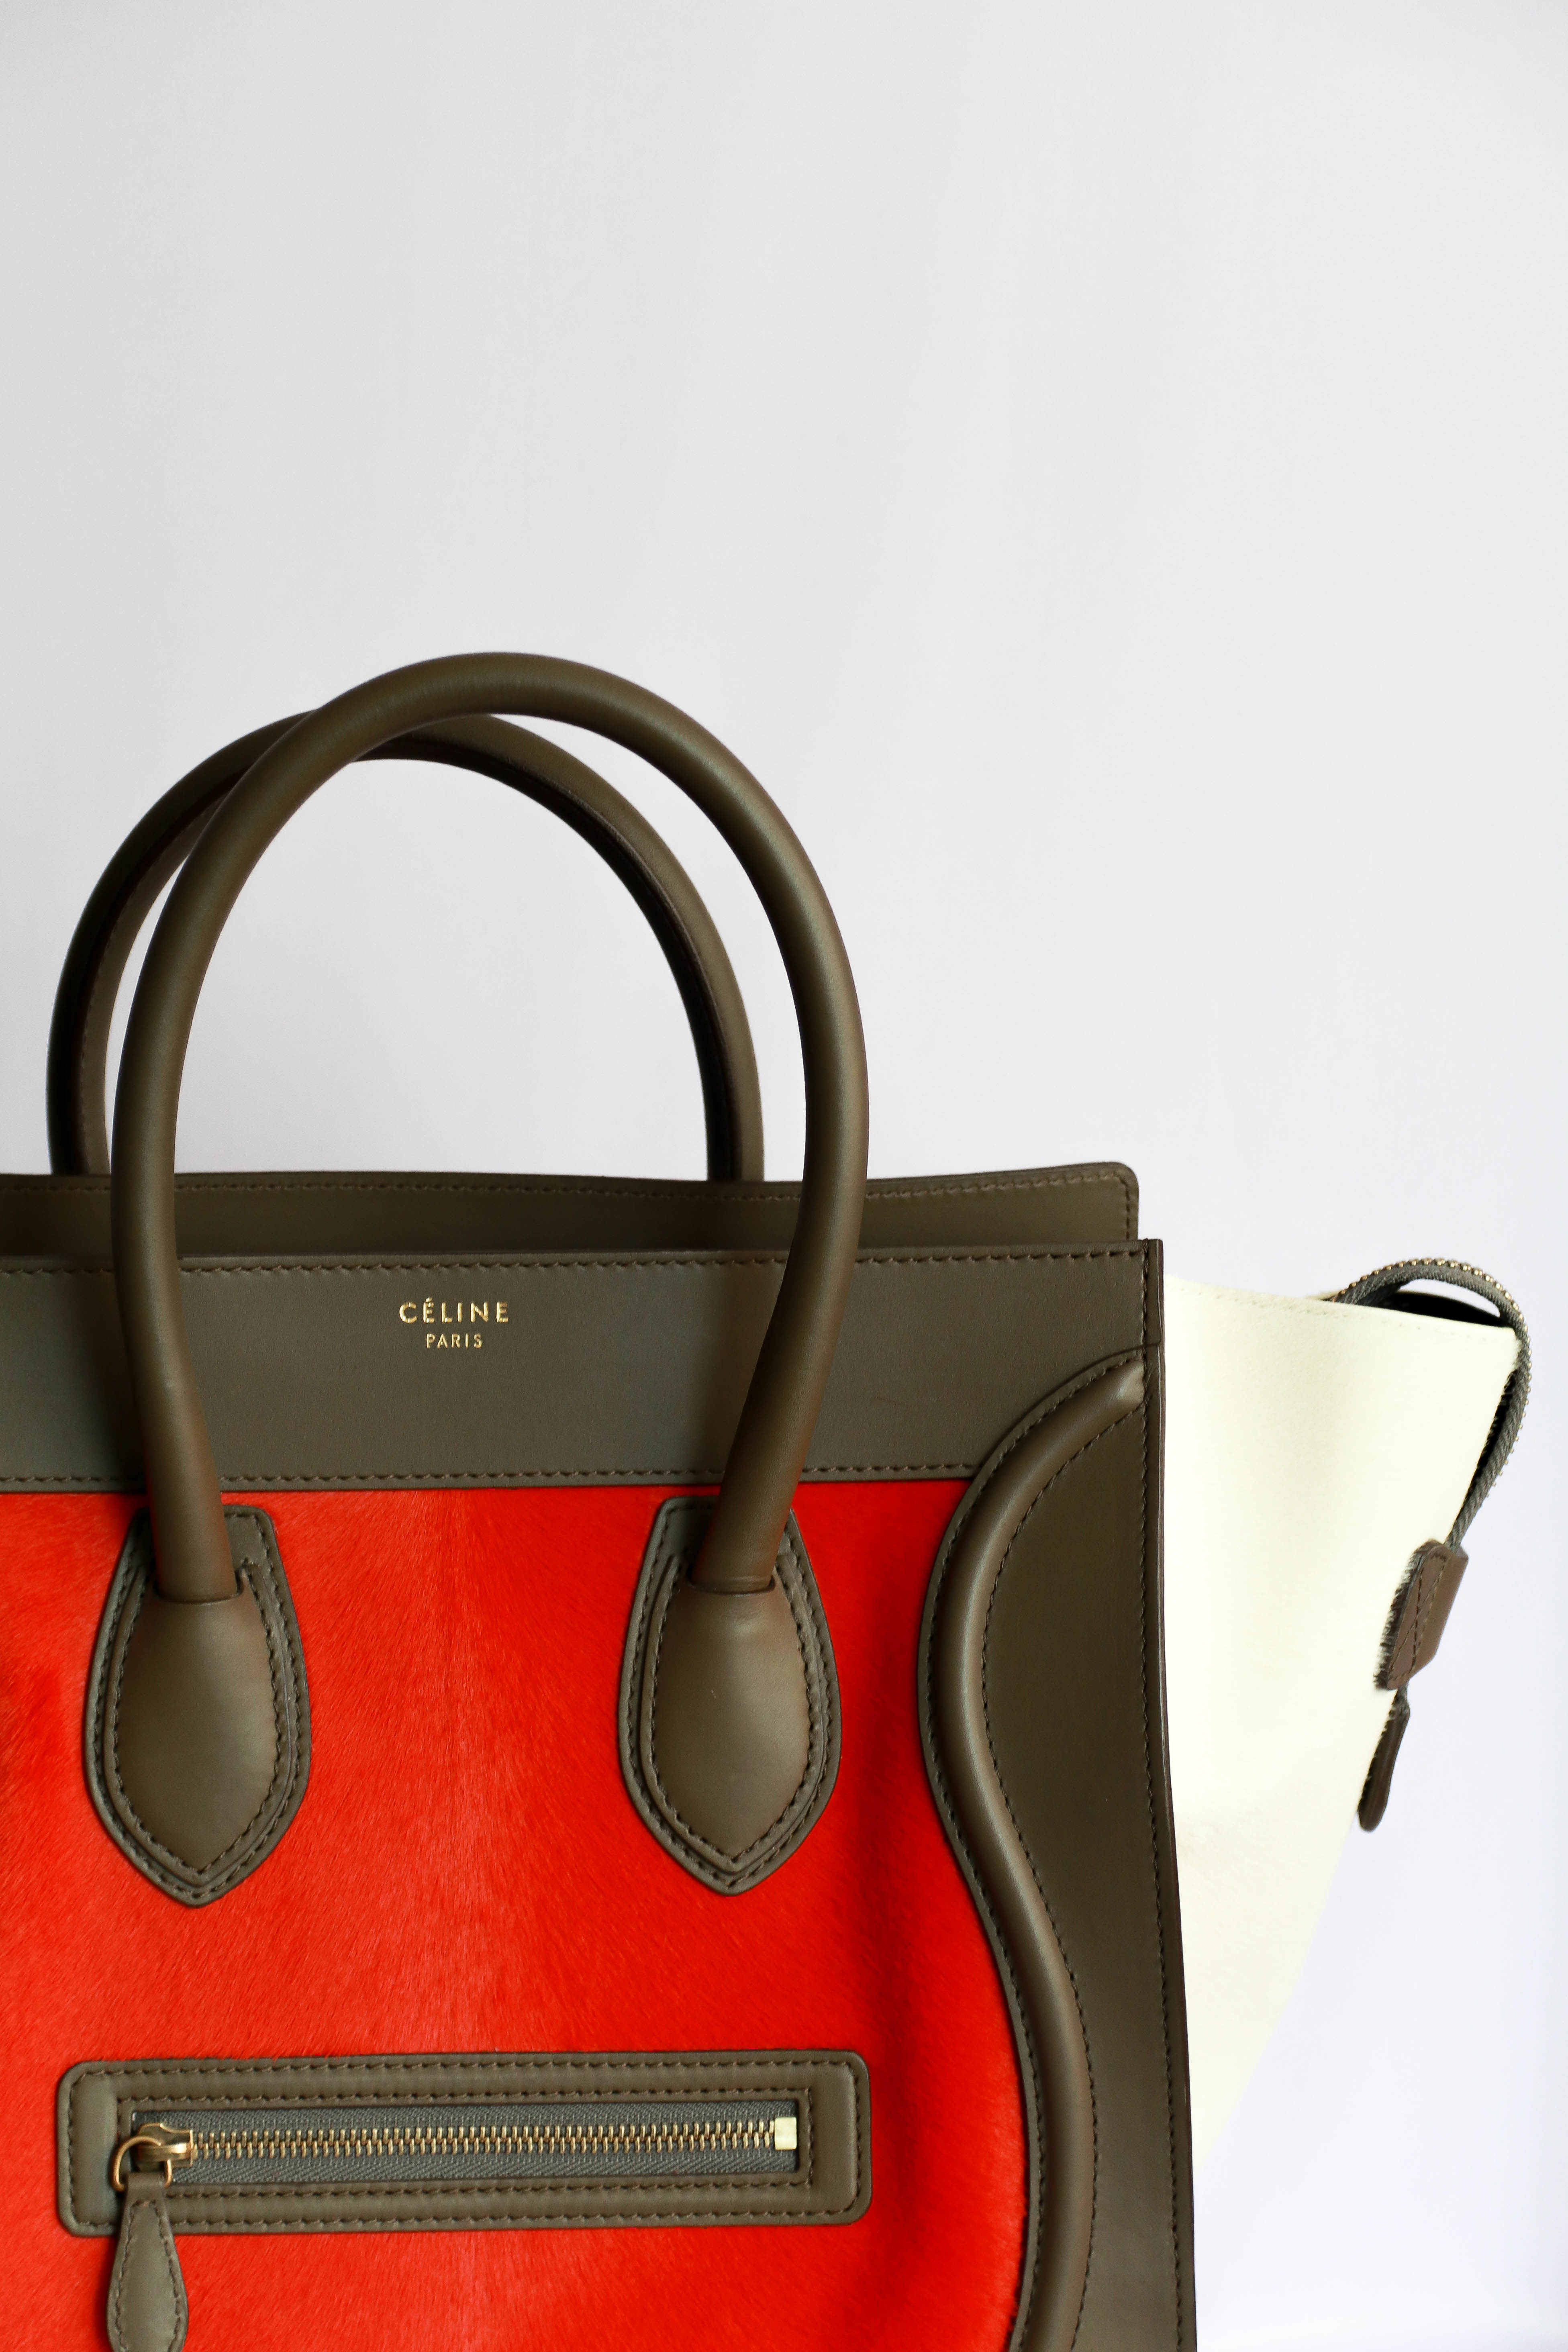 96efd6c74108 The Story Behind the Iconic Celine Luggage Tote - modaselle